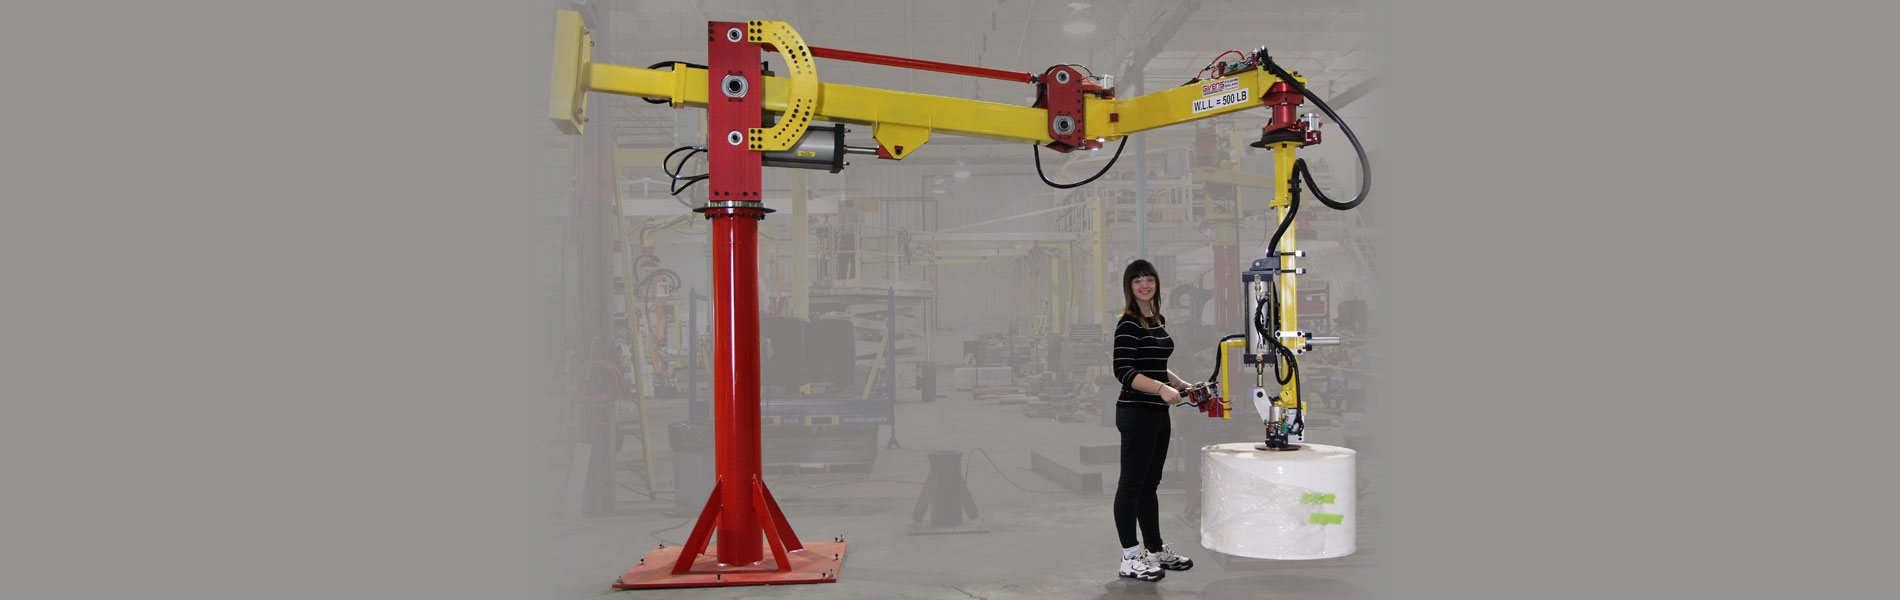 Industrial Manipulators custom designed & manufactured in the US by Givens Lifting Systems Inc.